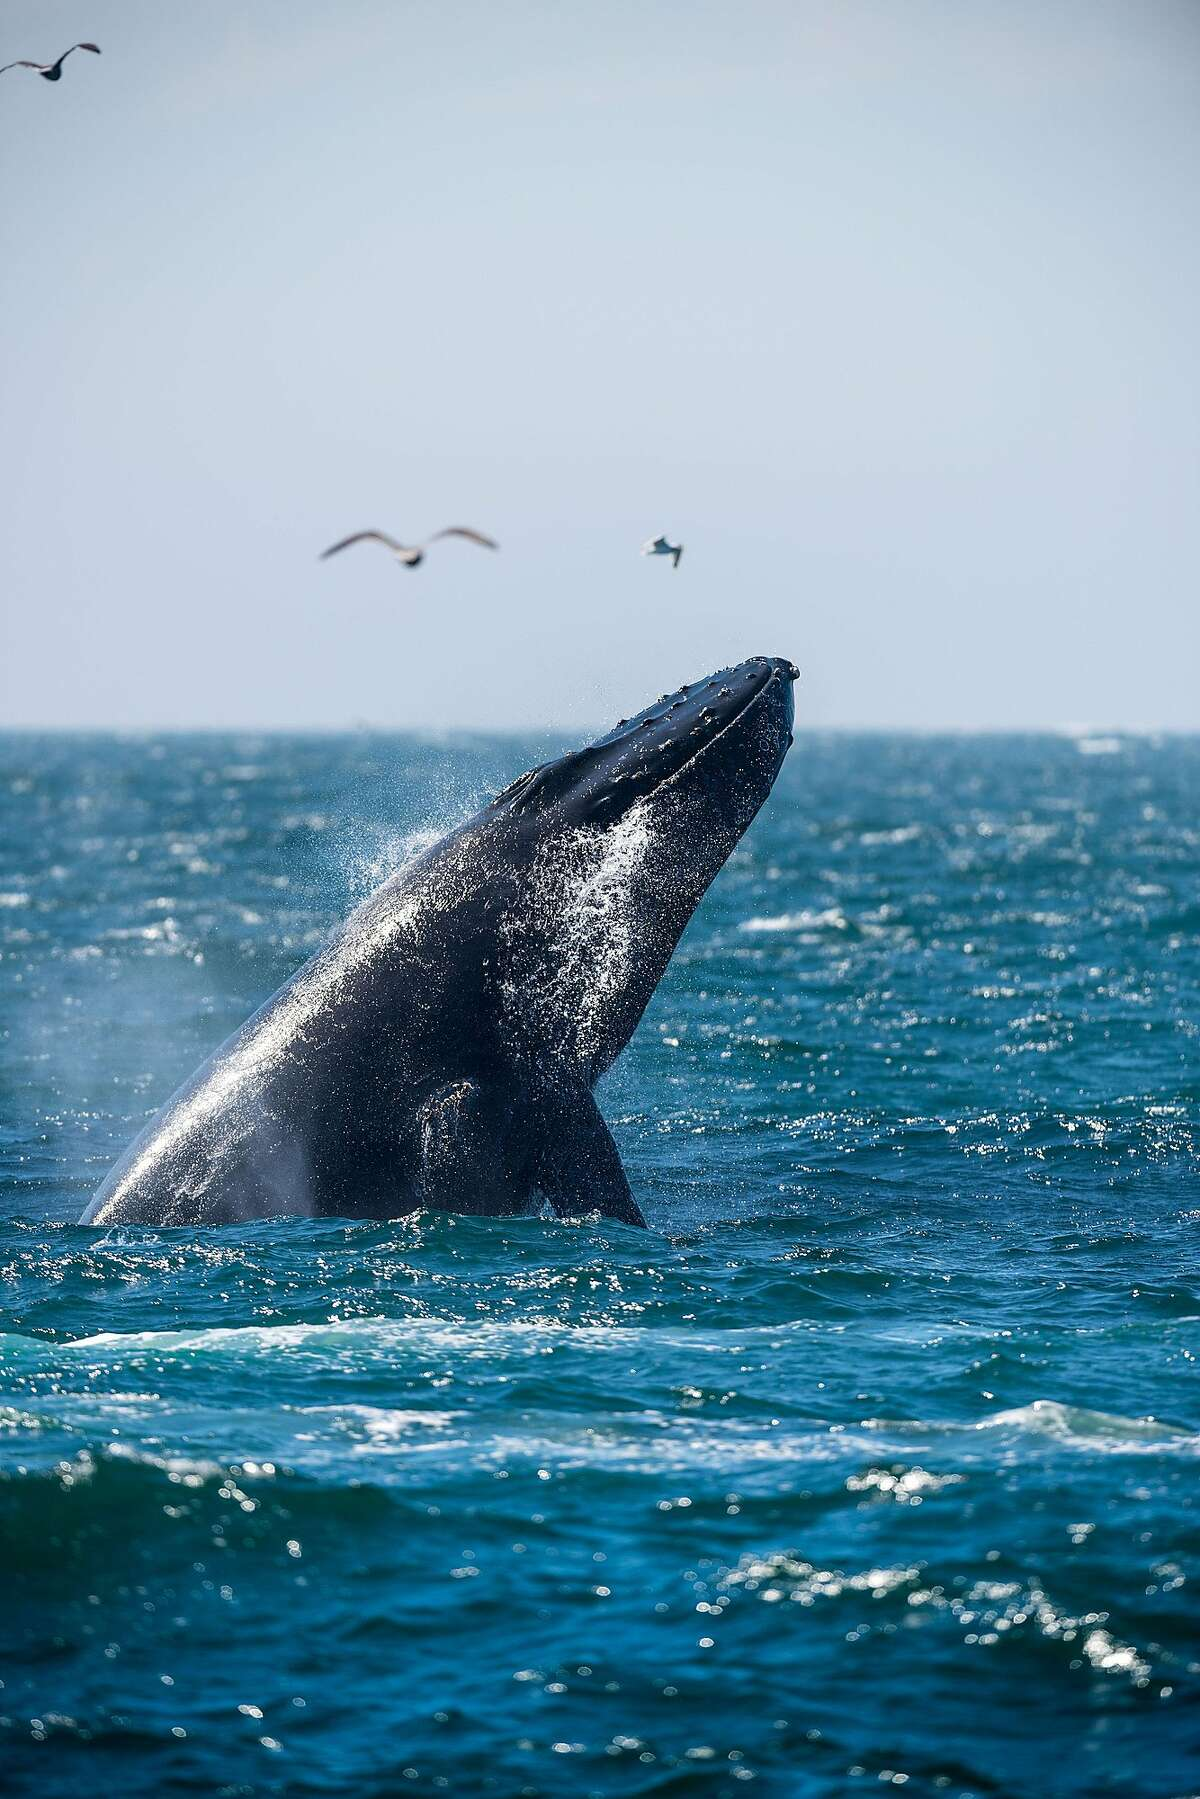 FILE - A humpback whale breaching in Monterey Bay, Calif. on Aug. 27, 2015. As more humpback whales drift into the San Francisco Bay during feeding season, they face the threat of recreational boaters colliding into them.